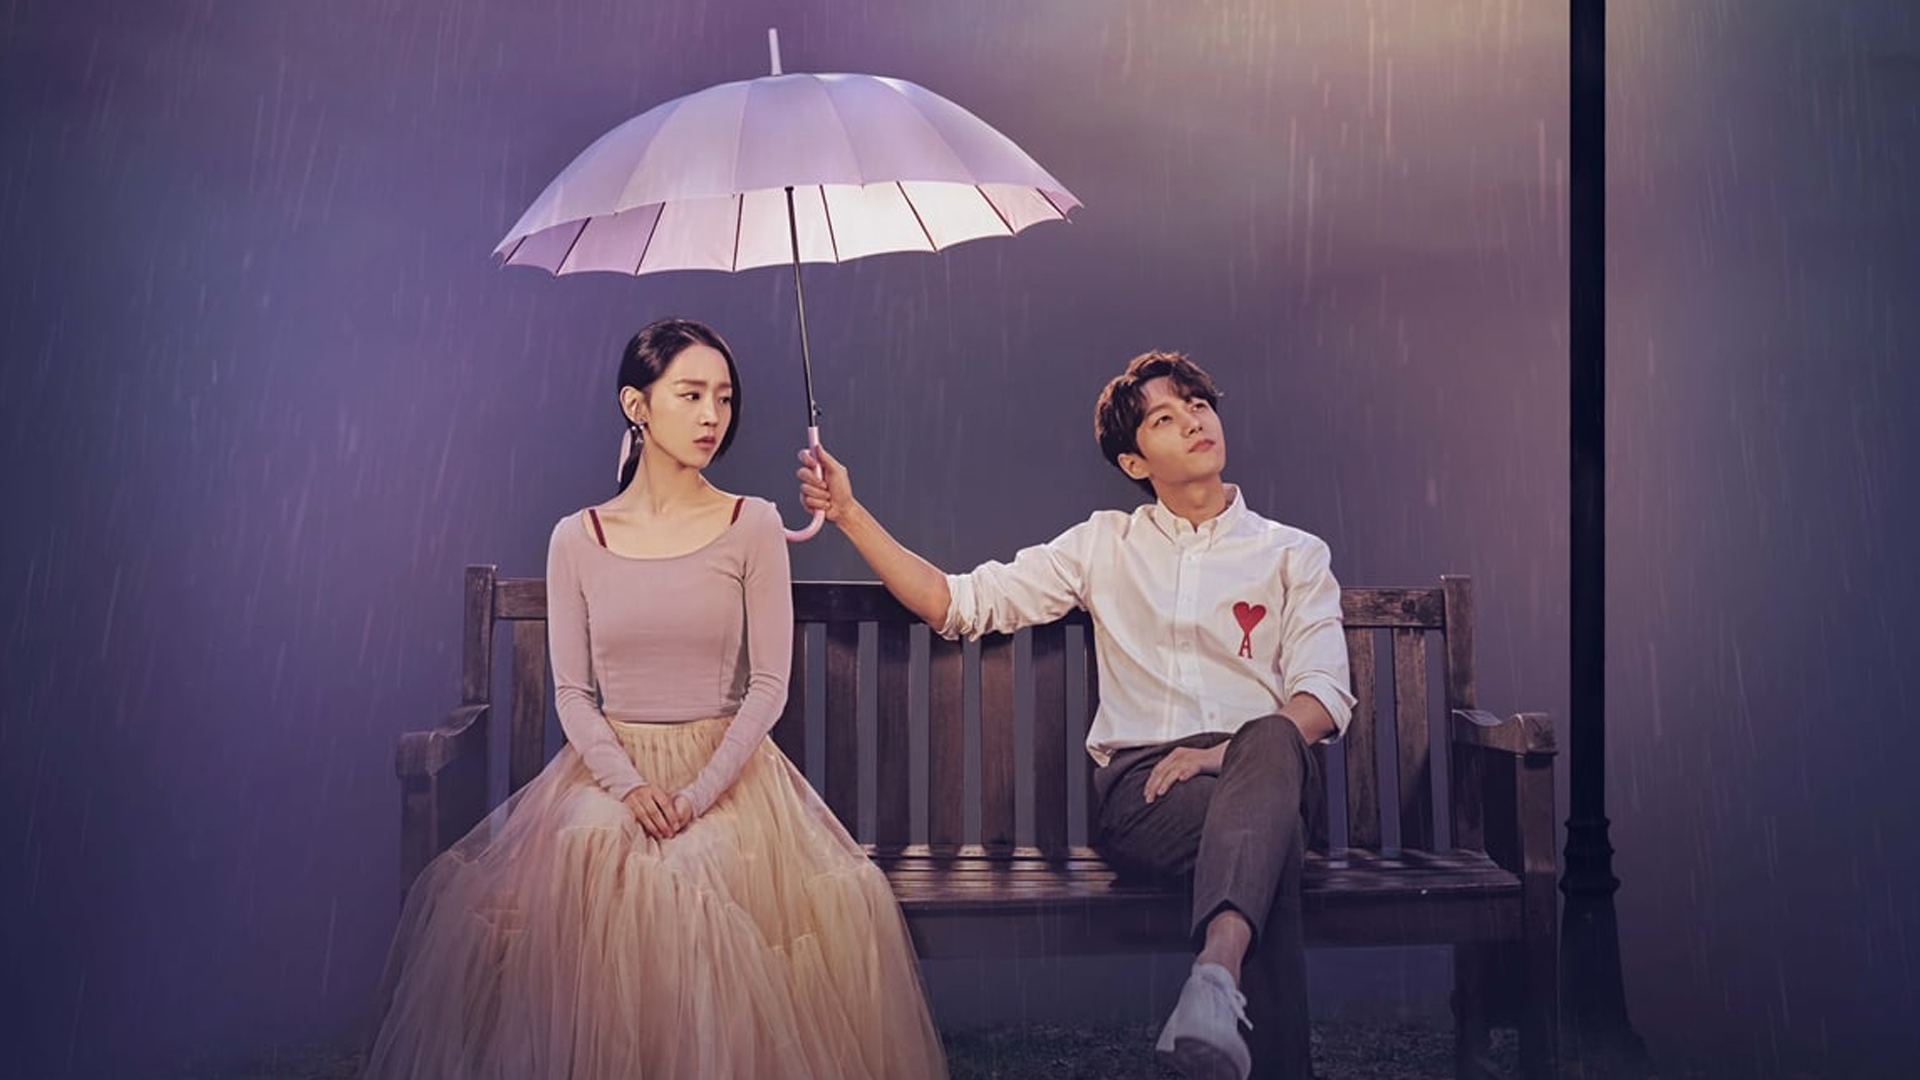 """Good Ol' Review: Kim Myungsoo and Shin Hye Sun Carry the Bewildering """"Angel's Last Mission: Love"""" On Their Shoulders"""